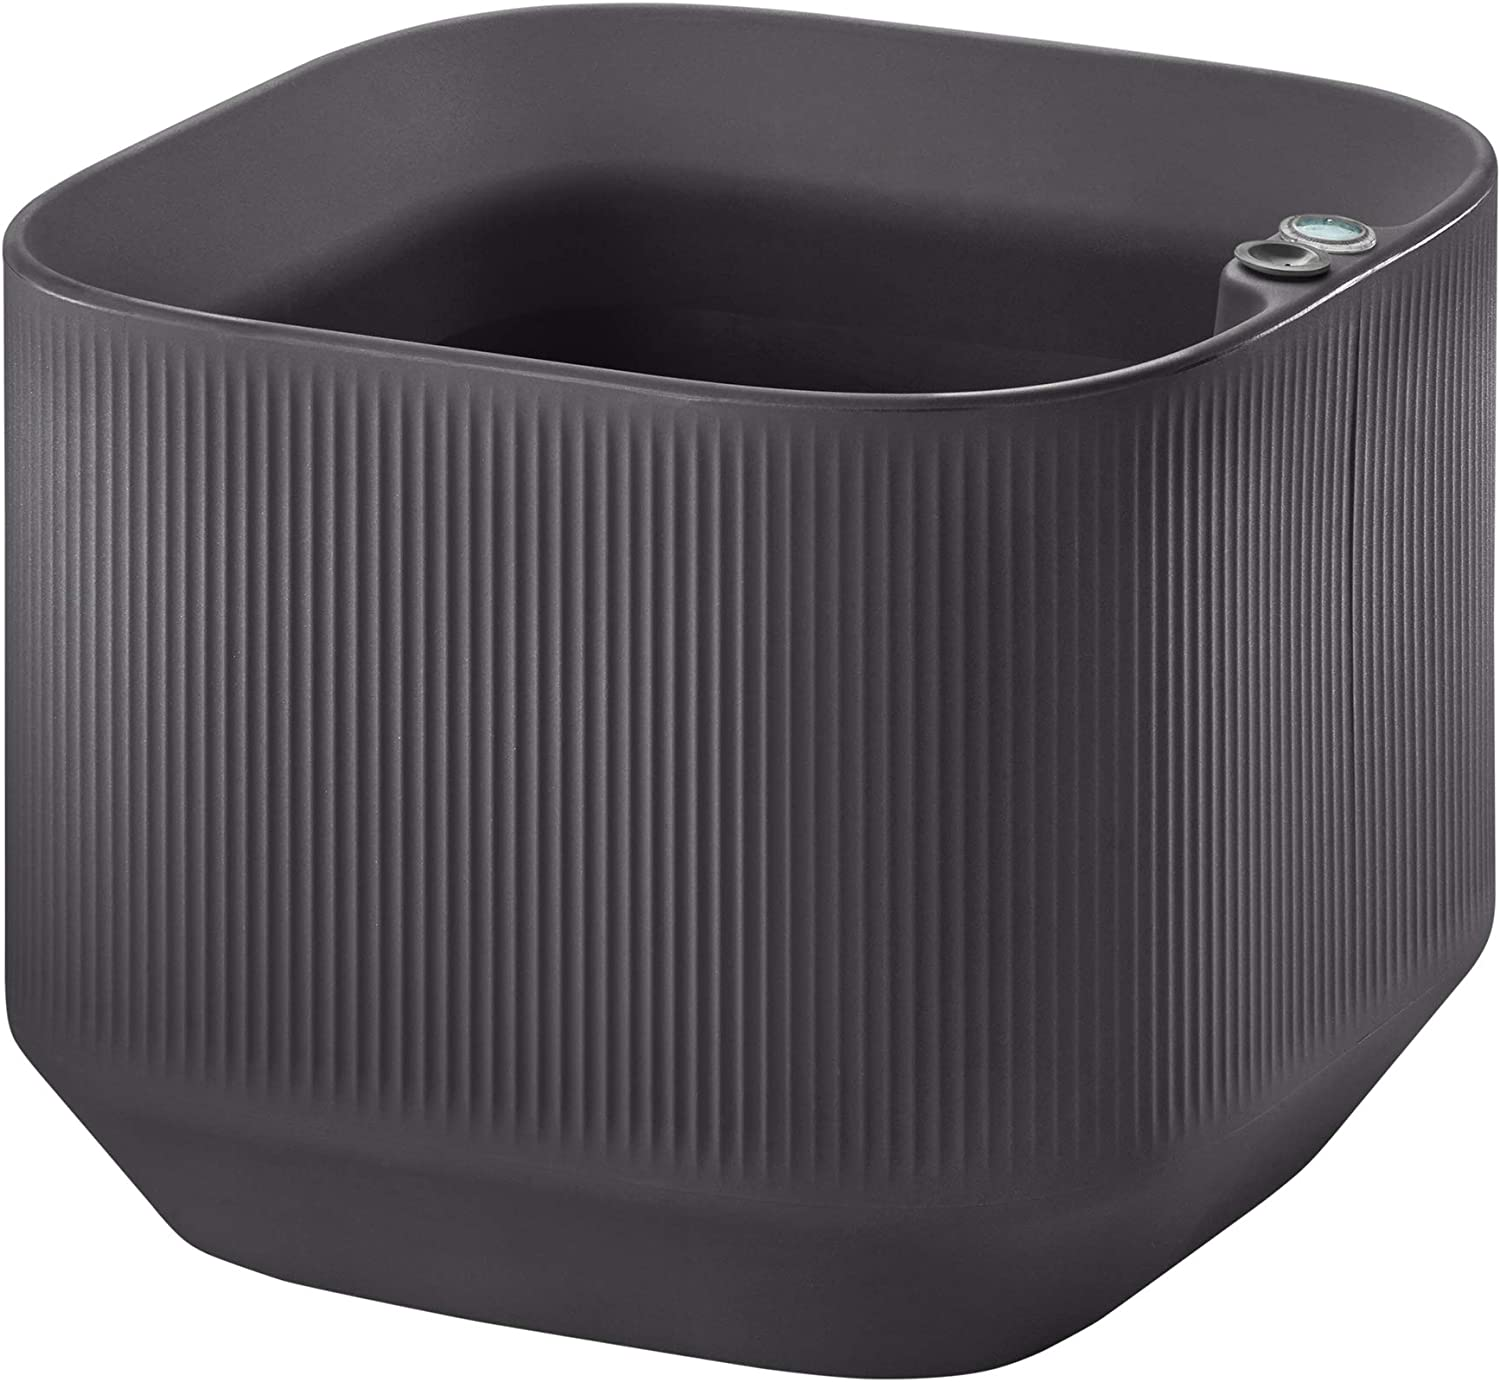 Crescent Garden Modular Large Trough Planter Box, Self-Watering Pot for Indoor and Outdoor Plants, Modern Planter 20